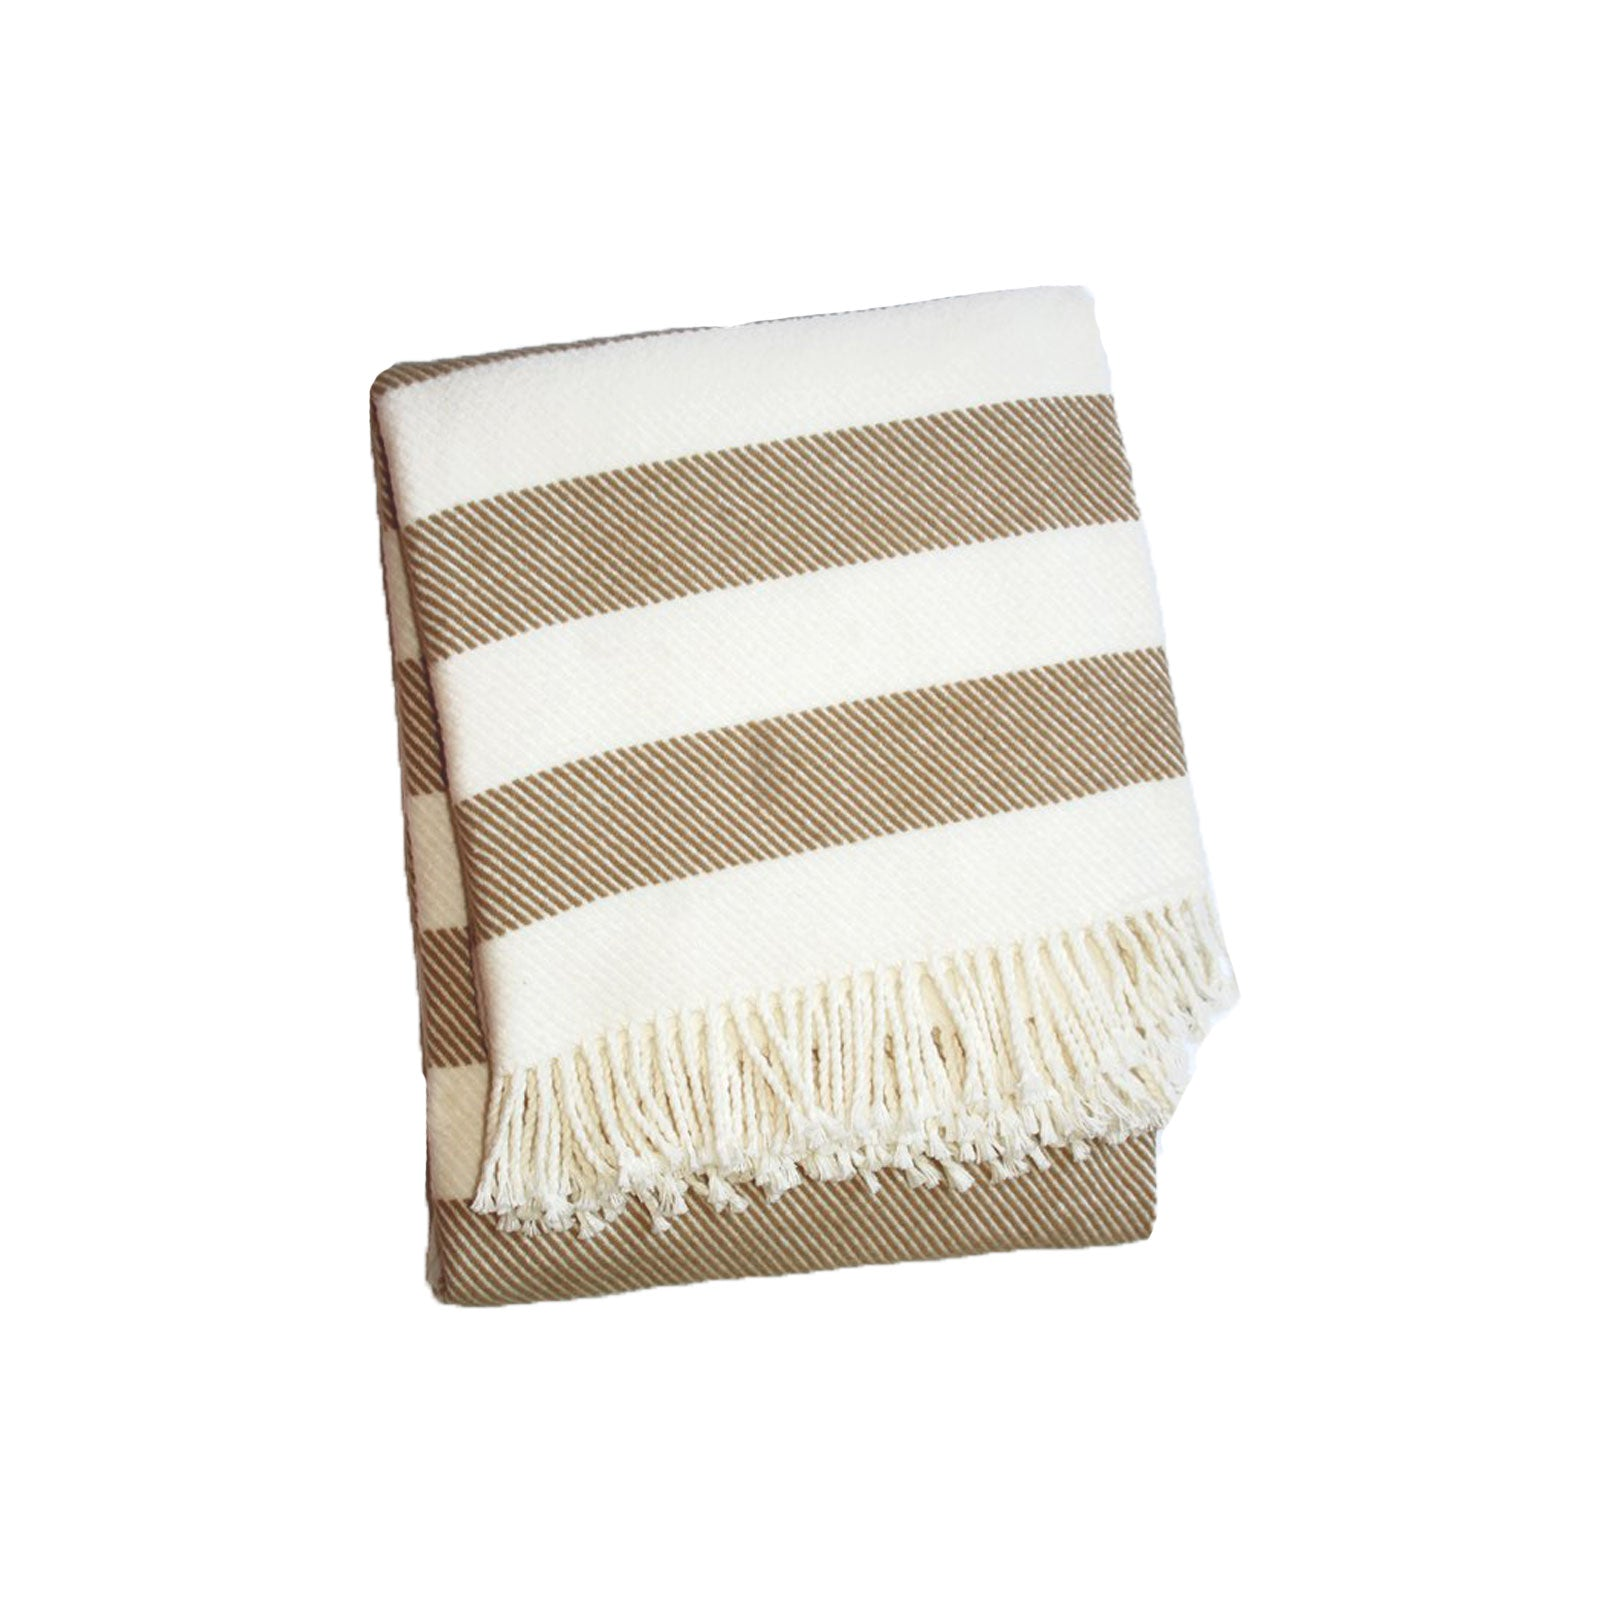 Cabana Stripe Throw in Camel